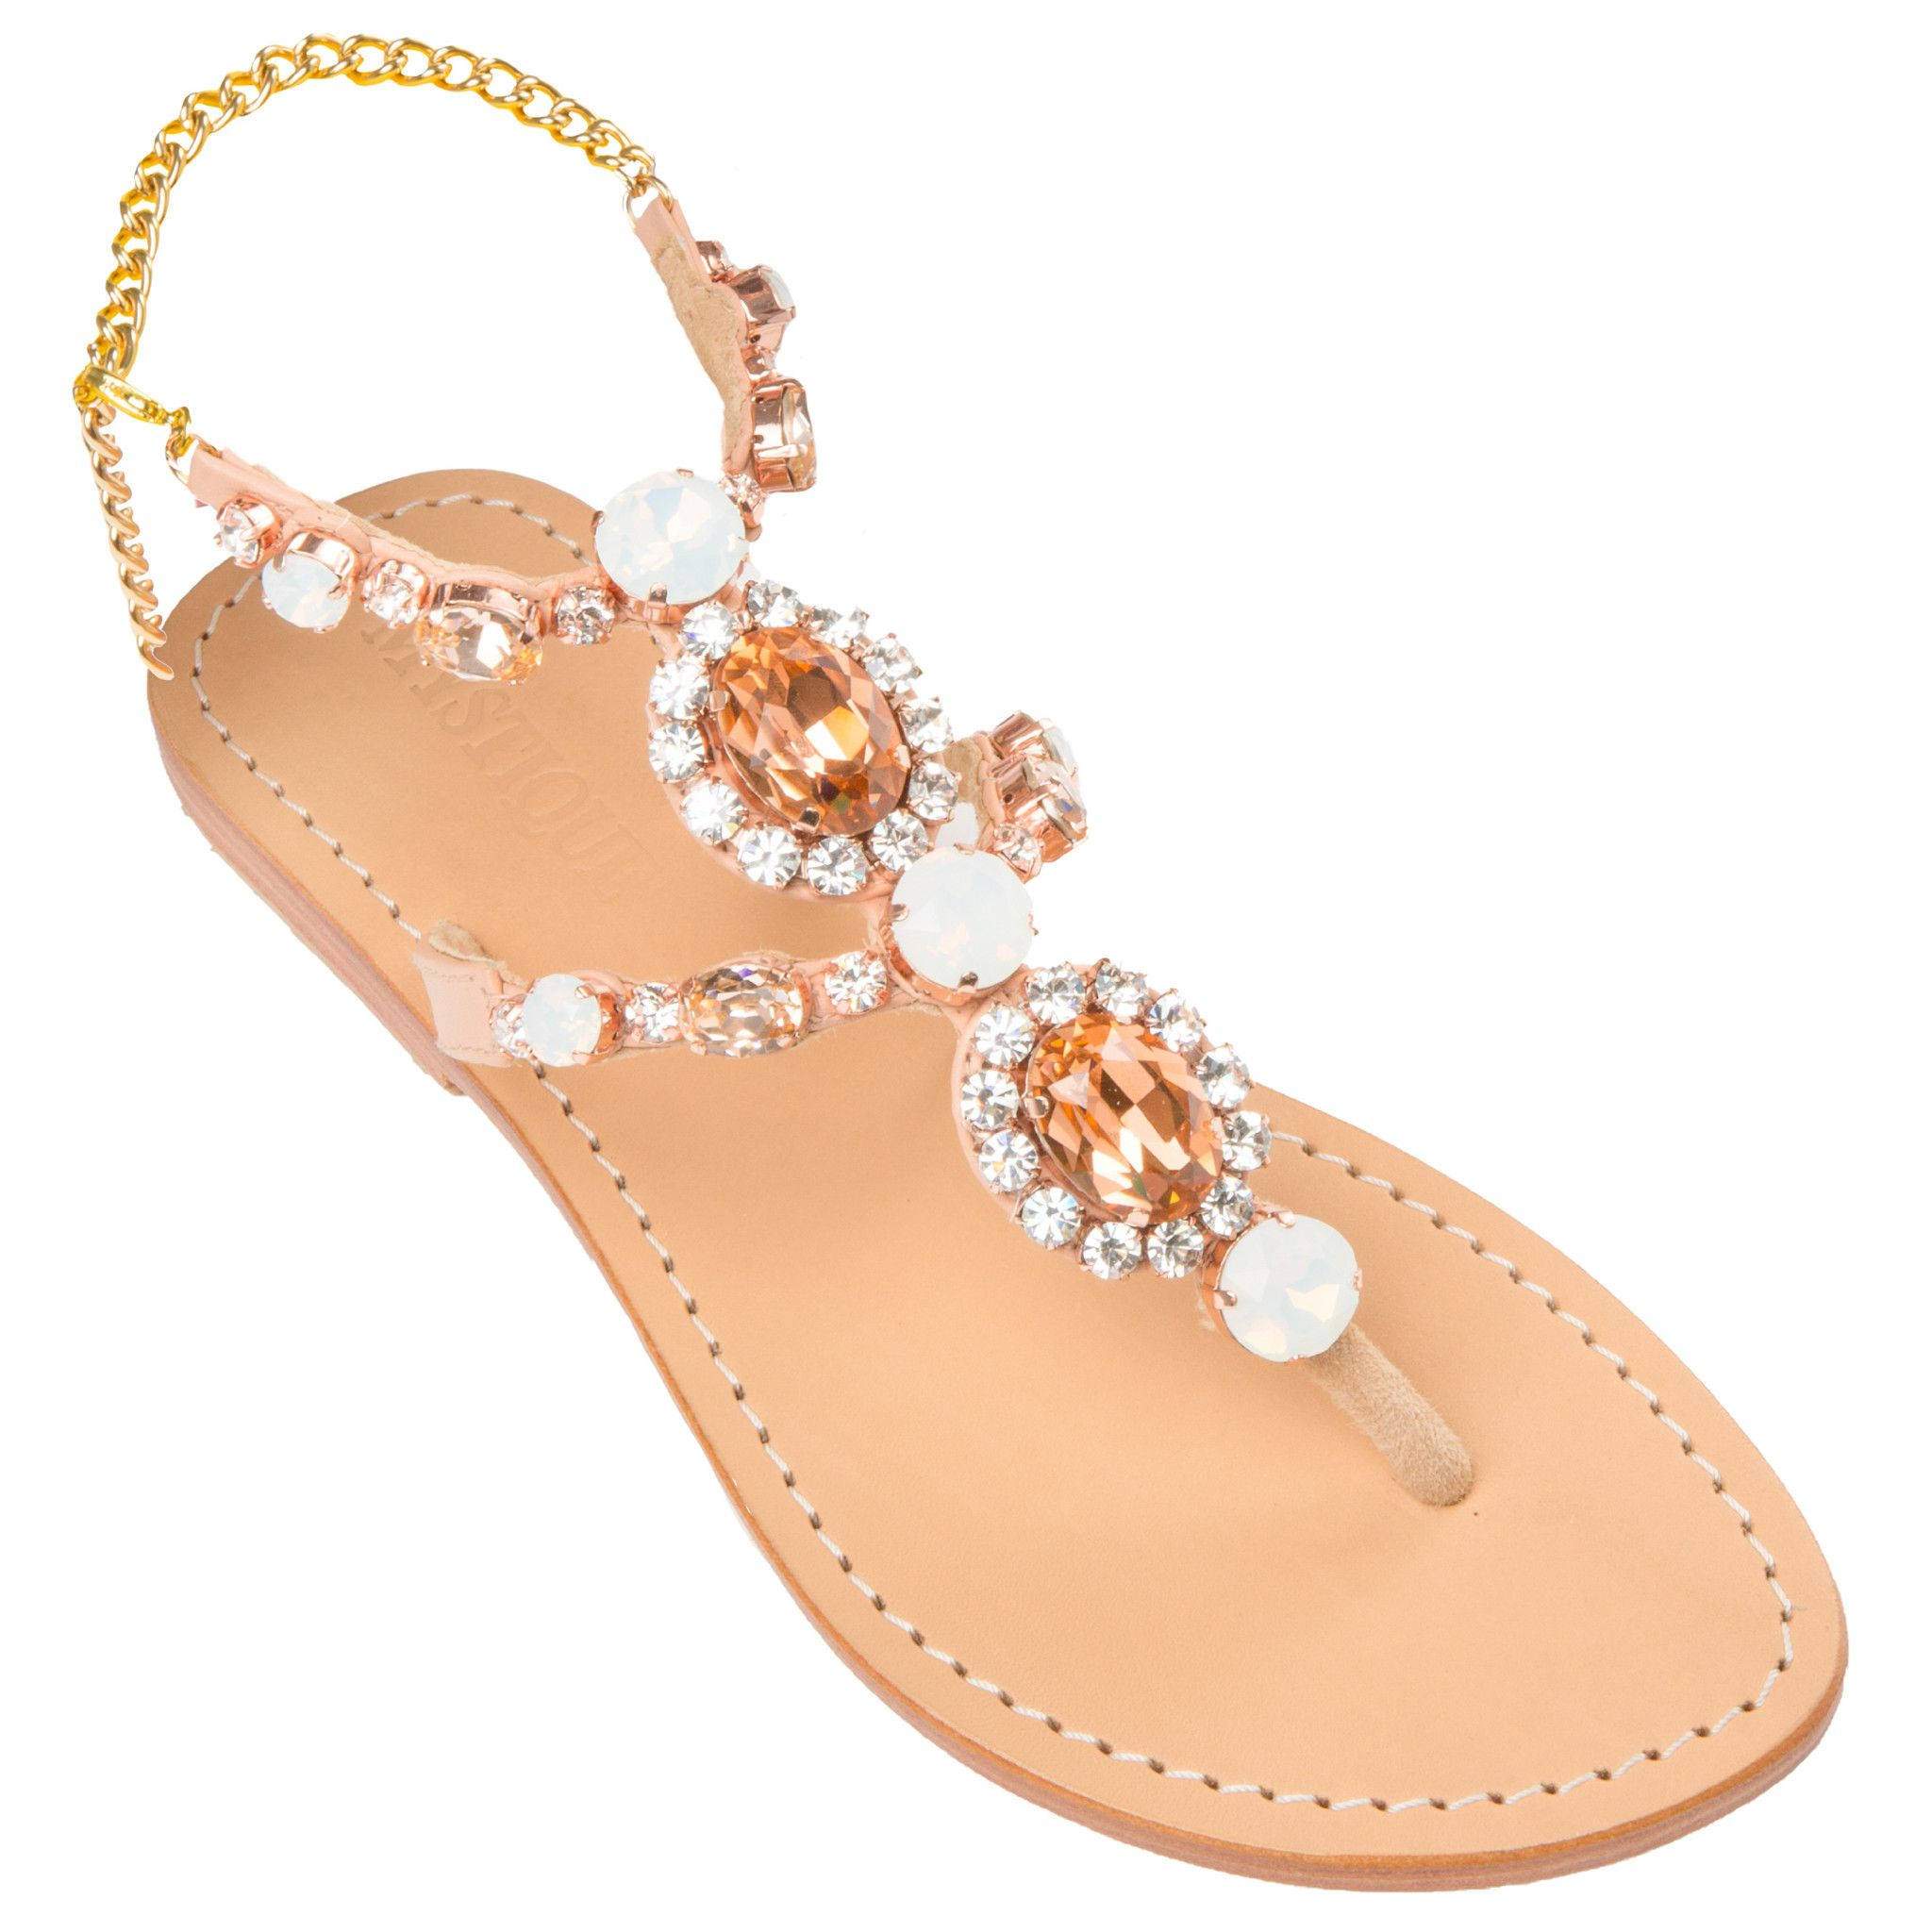 buy cheap new clearance pay with paypal Mystique Leather Embellished Sandals 2014 newest for sale sast sxdb1G3s